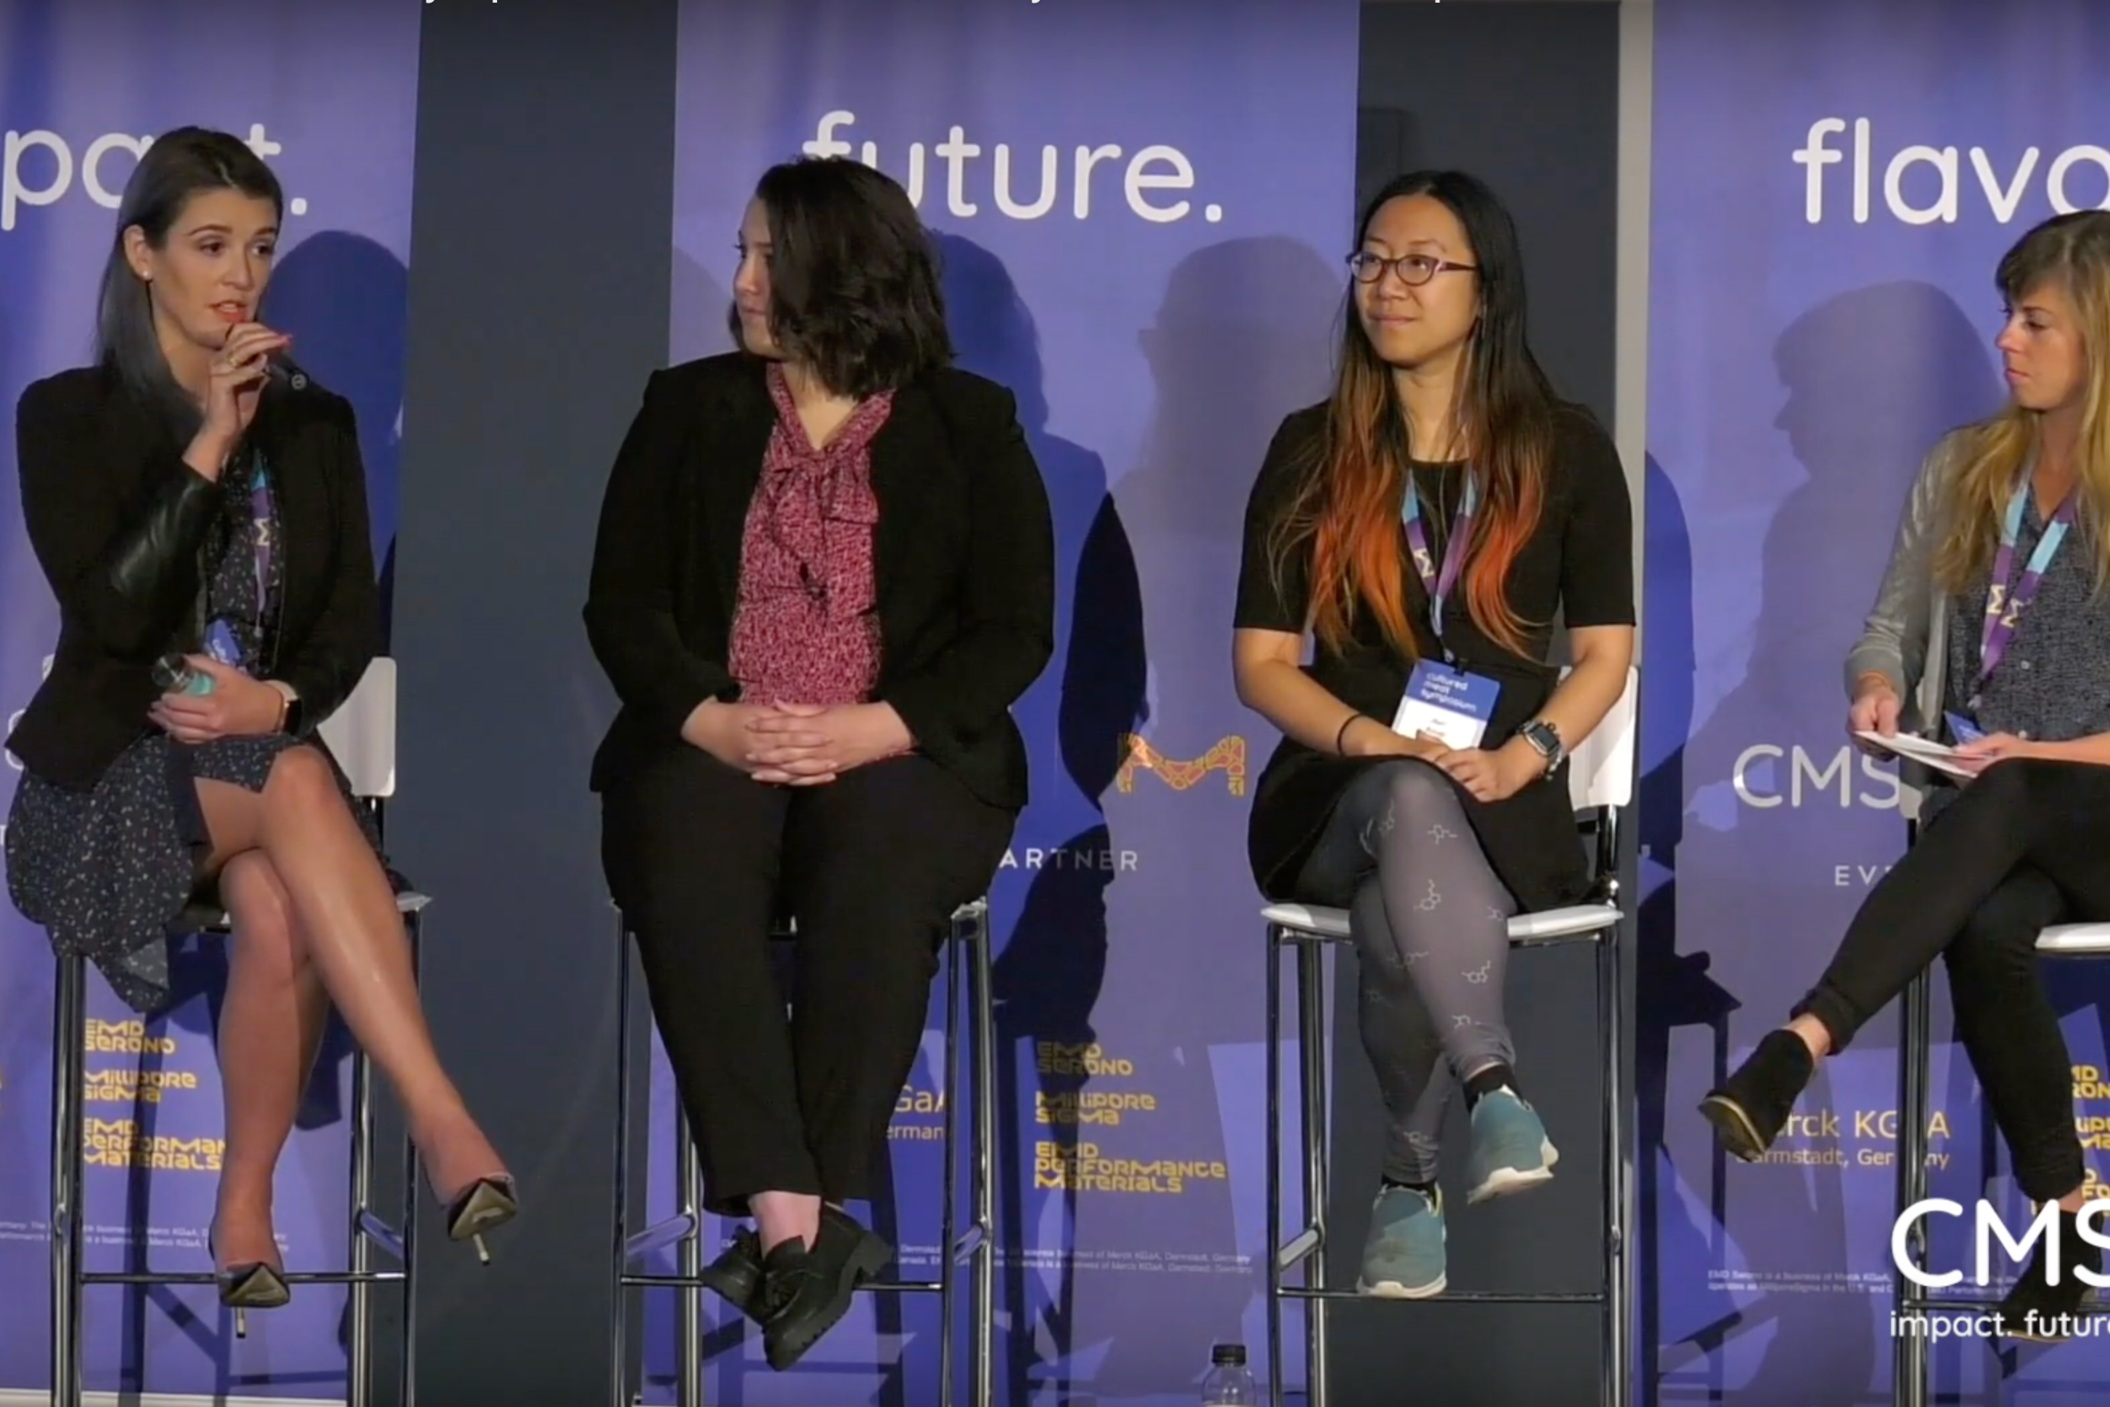 VC Panel at the Cultured Meat Symposium, San Francisco Nov 2018.  Venture Partner Laura Zaim joined Macy Marriott of Stray Dog Capital, Jun Axup of IndieBio/SOSV and moderator Heather Mack of the WSJ to discuss trends, investment opportunities and predictions for the Cultured Meat industry.   Watch the Full Panel